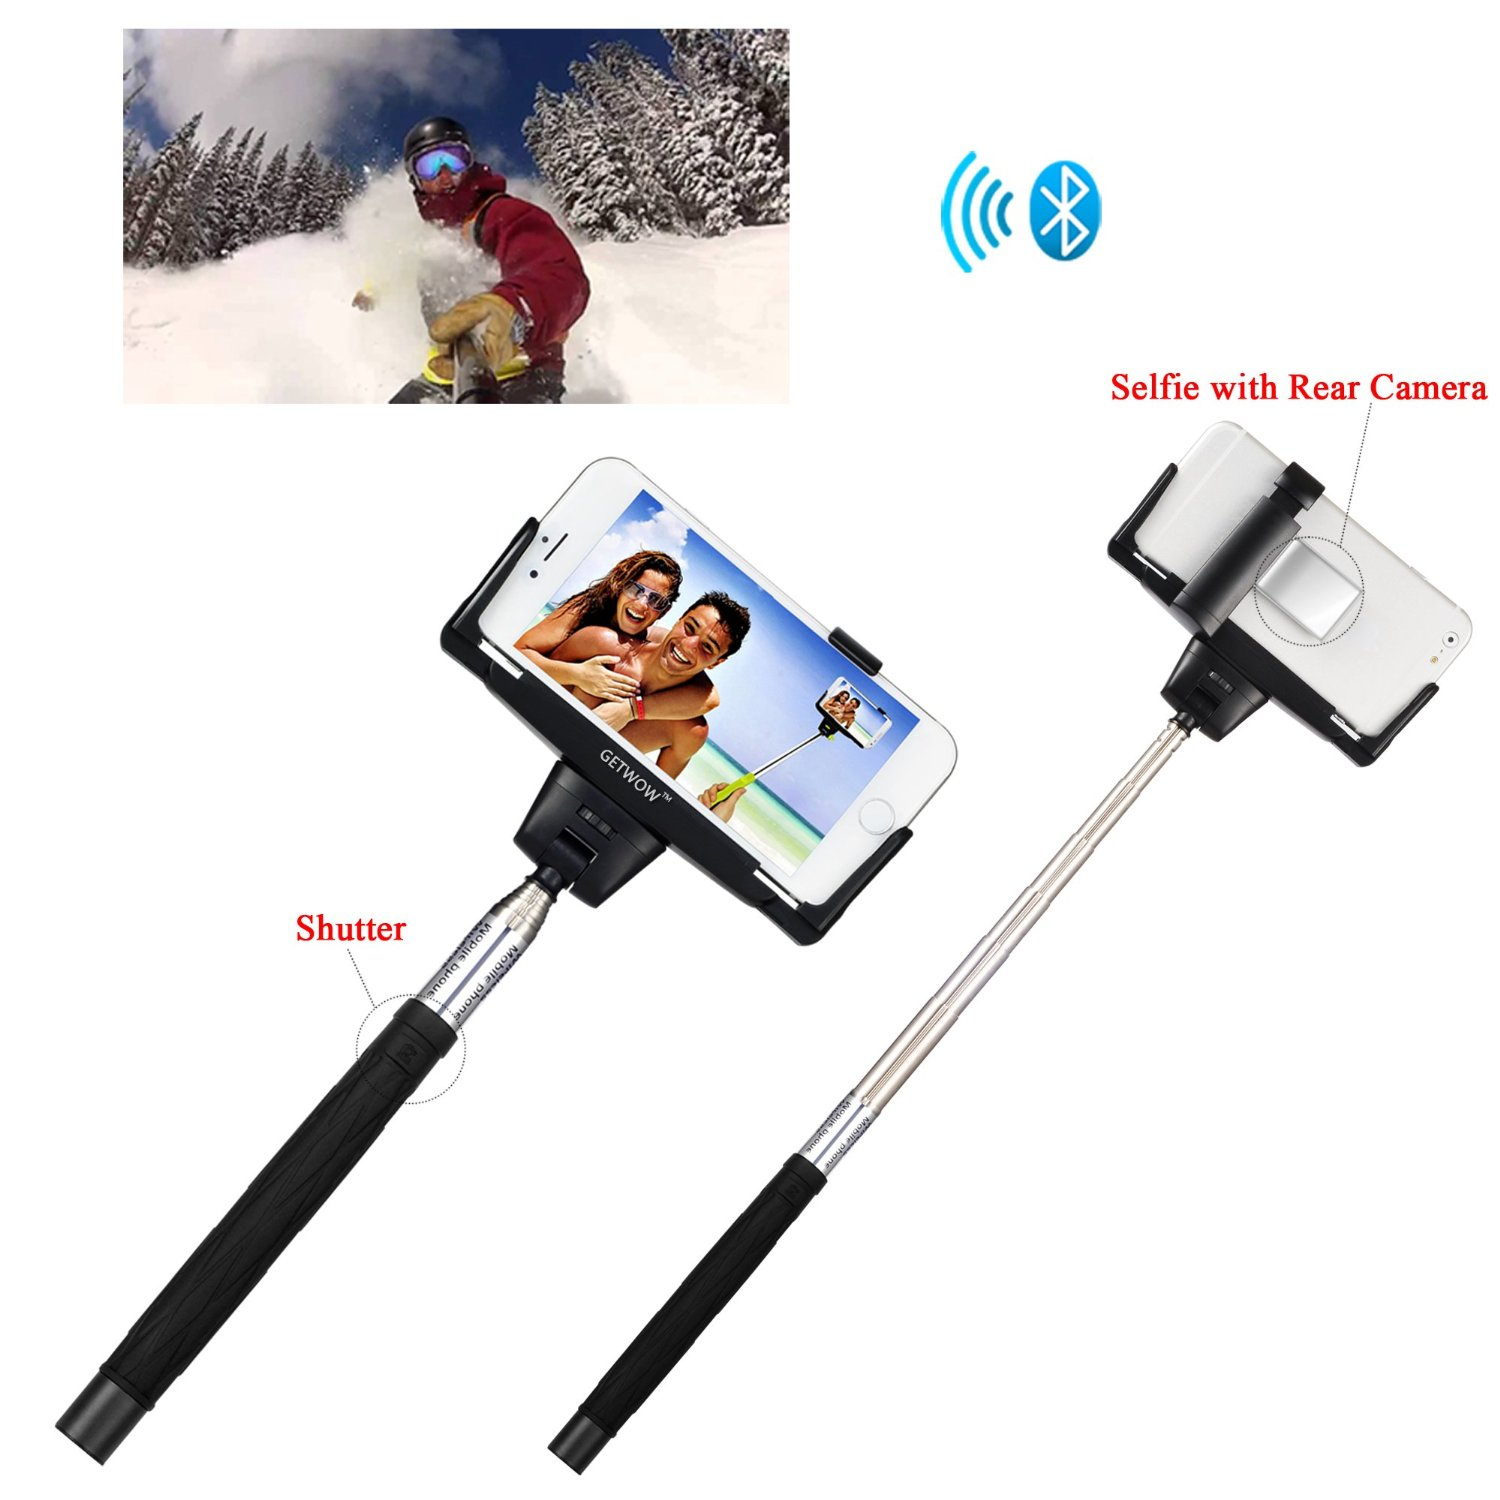 Getwow(TM) Extendable Self-portrait Wireless Bluetooth Remote Camera Shooting Shutter Monopod Selfie Handheld Stick Pole with Mount Holder and Super Clear Rear-camera Self-timer -- specially designed for Apple iPhone 6 Plus / 6 / 5s / 5c / 5 / 4s, Samsung Galaxy Alpha / S5 / S5 Active / S4 / S4